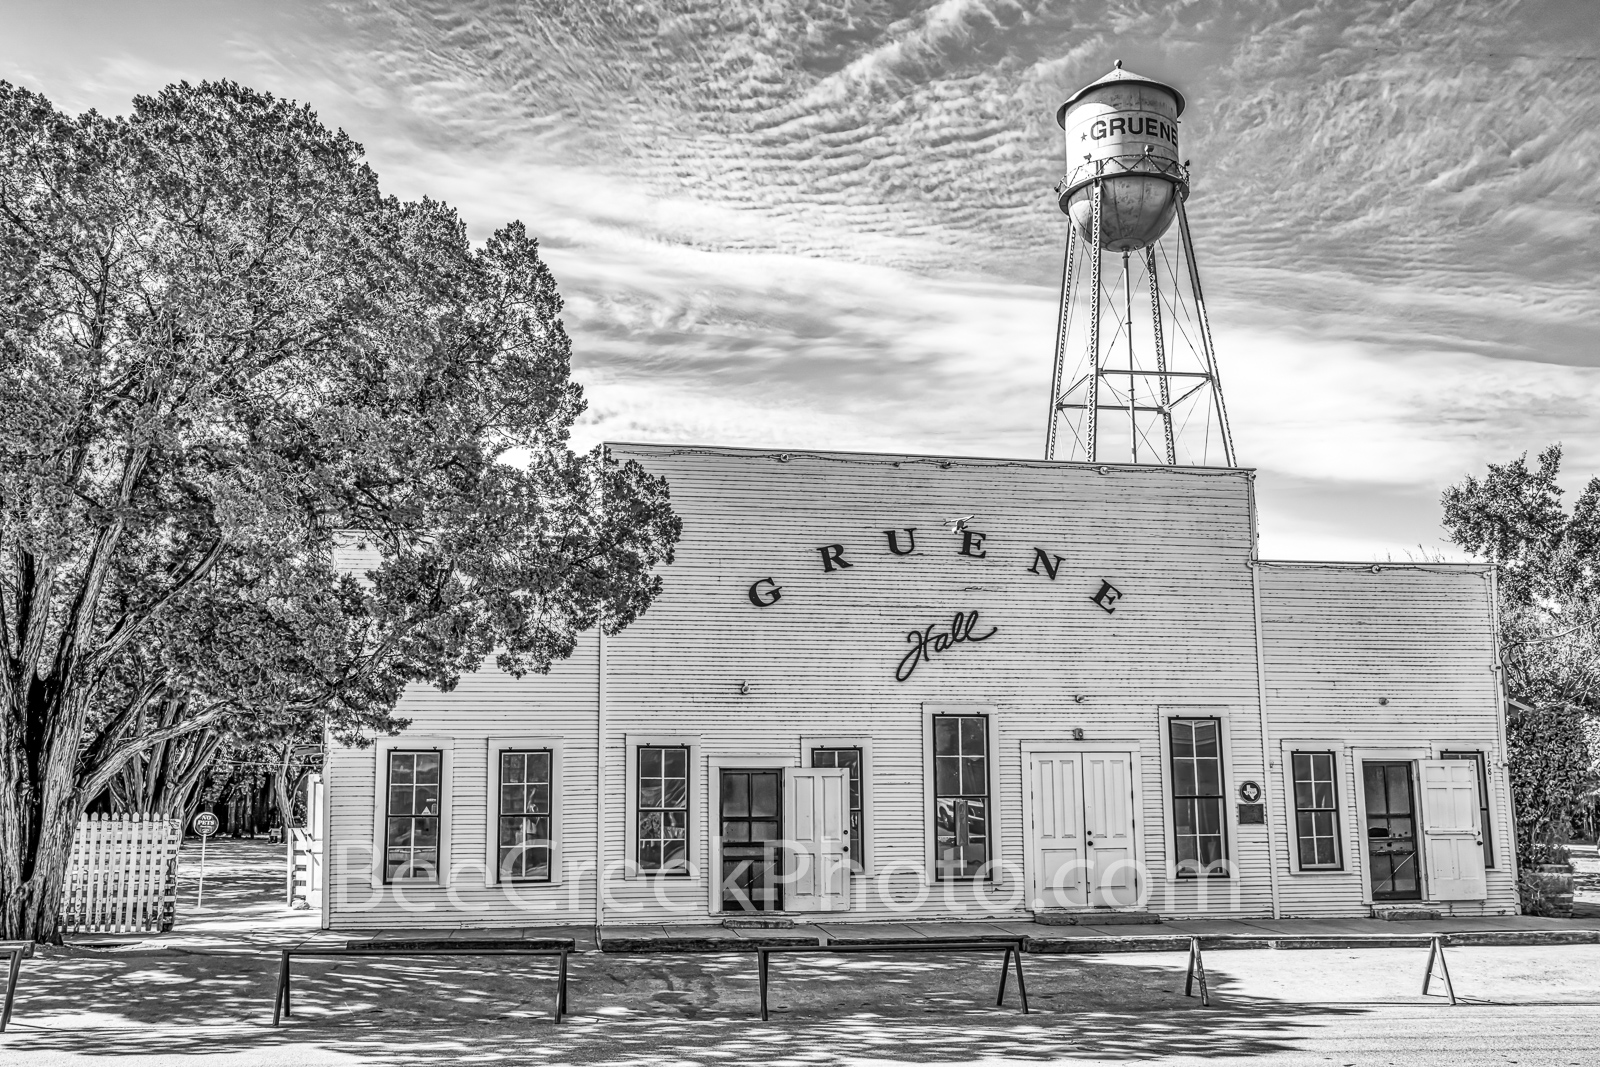 Gruene Hall, B W, black and whtie, Gruene Texas, dance hall, saloon, town, community, Earnest Gruene, german, german town,